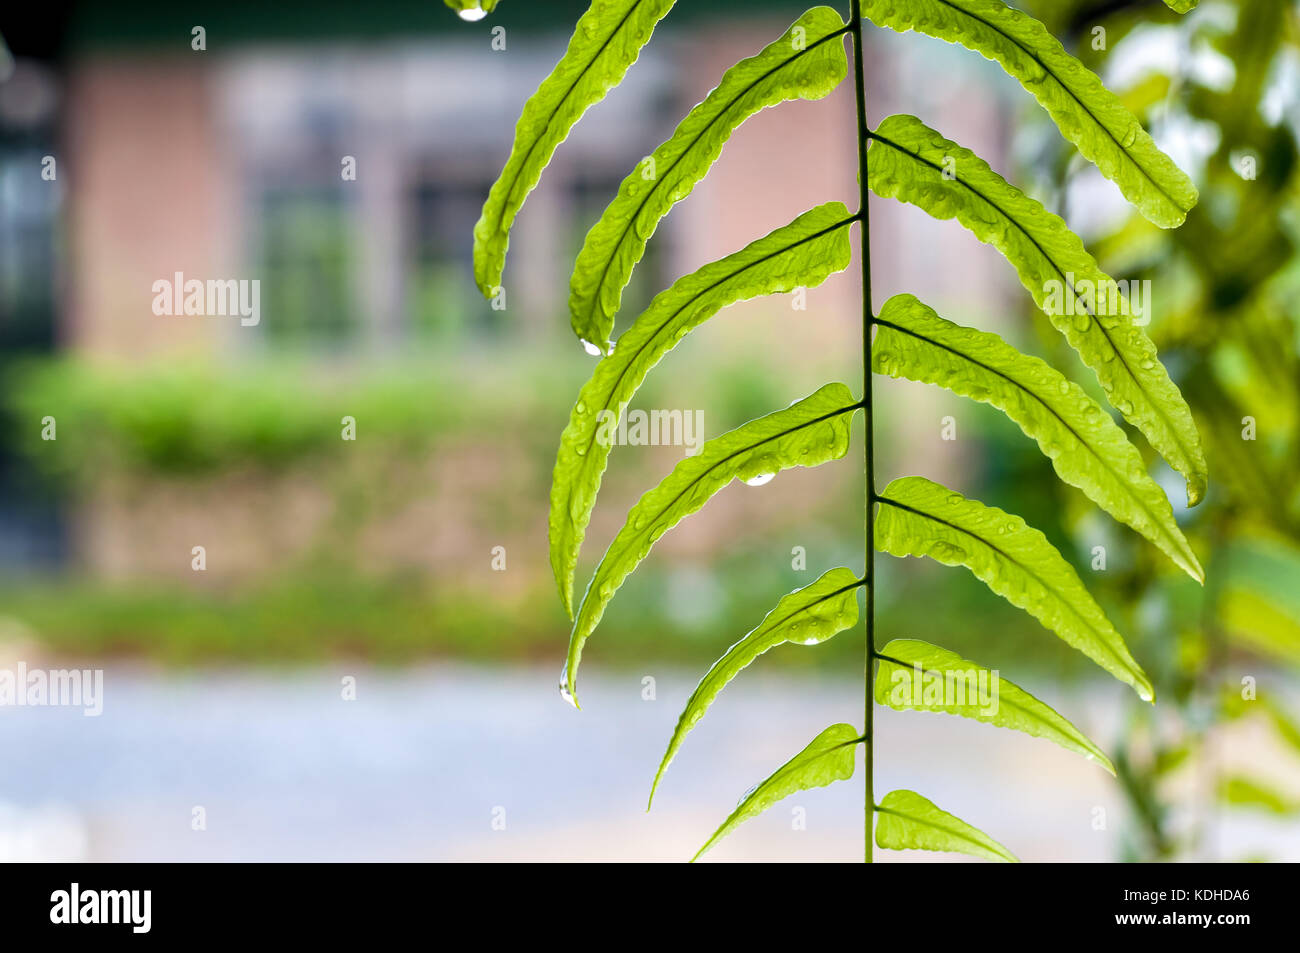 Closeup of wet green fern leaves, droplets on the leaves, black branches, blur background, copy spaces on the left. - Stock Image